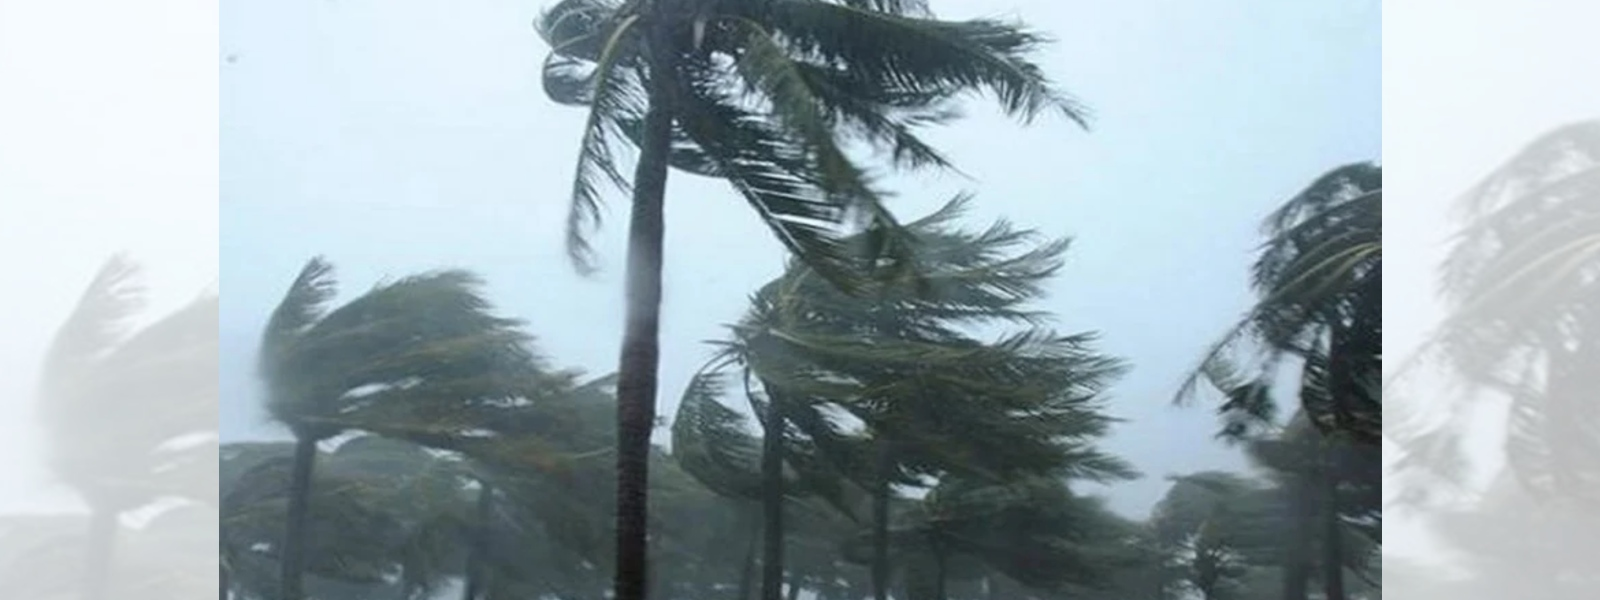 Over 3000 houses damaged due to gale force winds